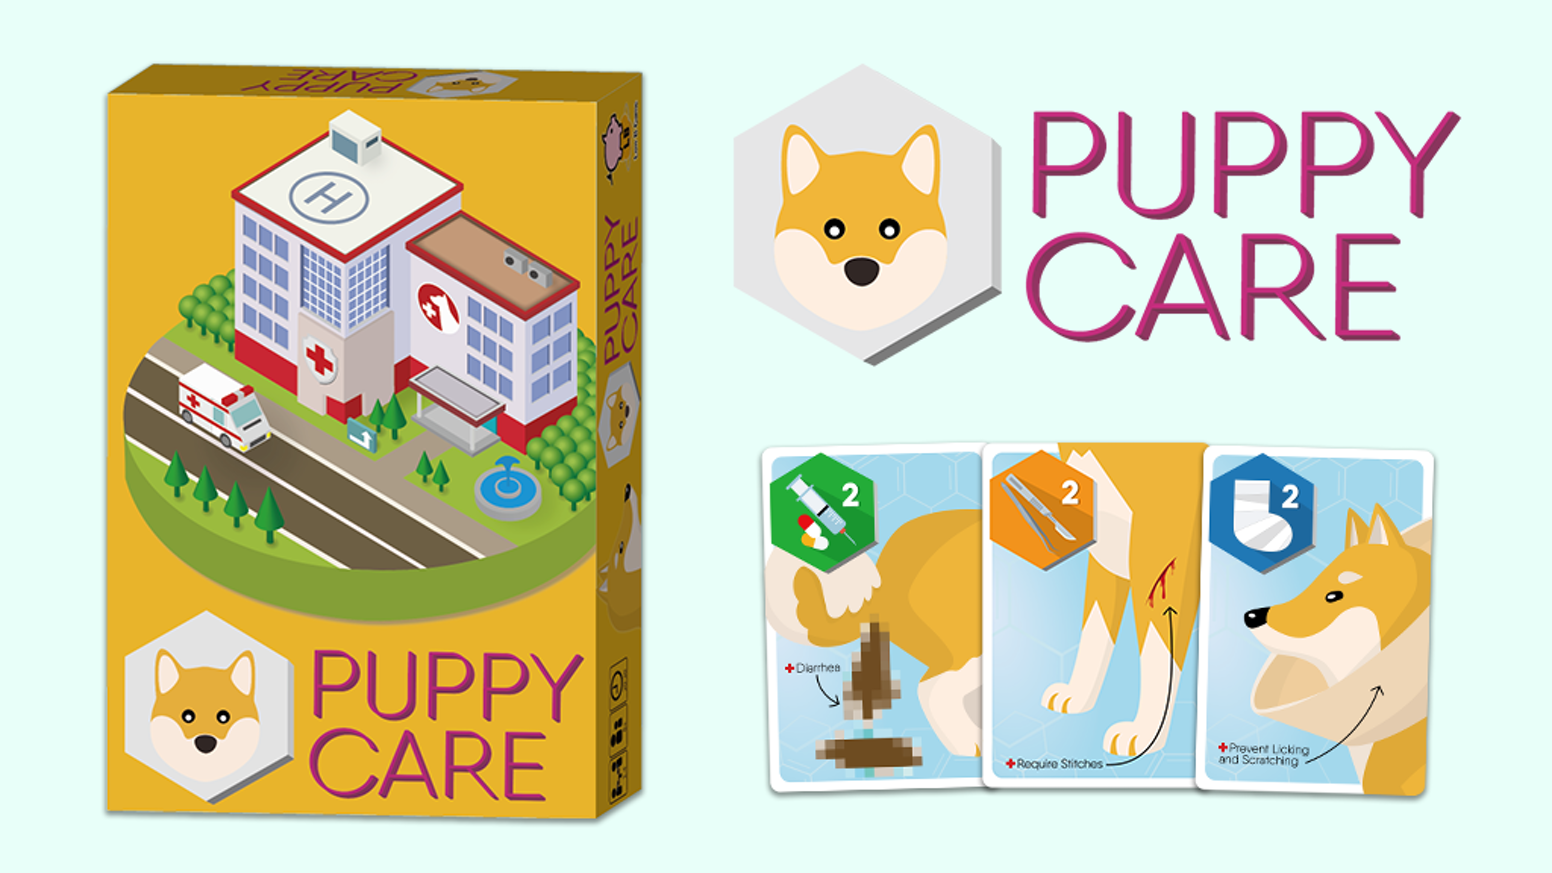 Puppy Care is a 2-4 players card game for family and friends about treating sick PUPPIES!